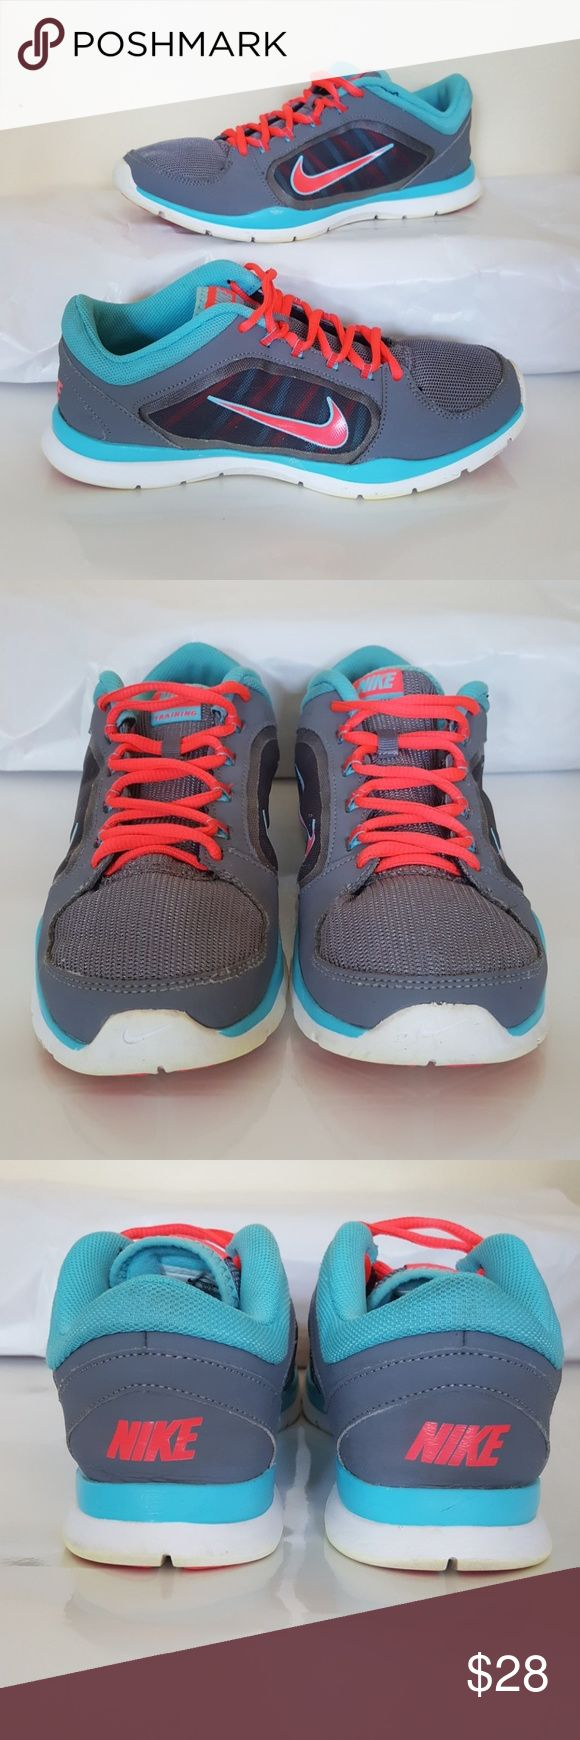 Nike Training shoes In good used condition Nike Shoes Athletic Shoes